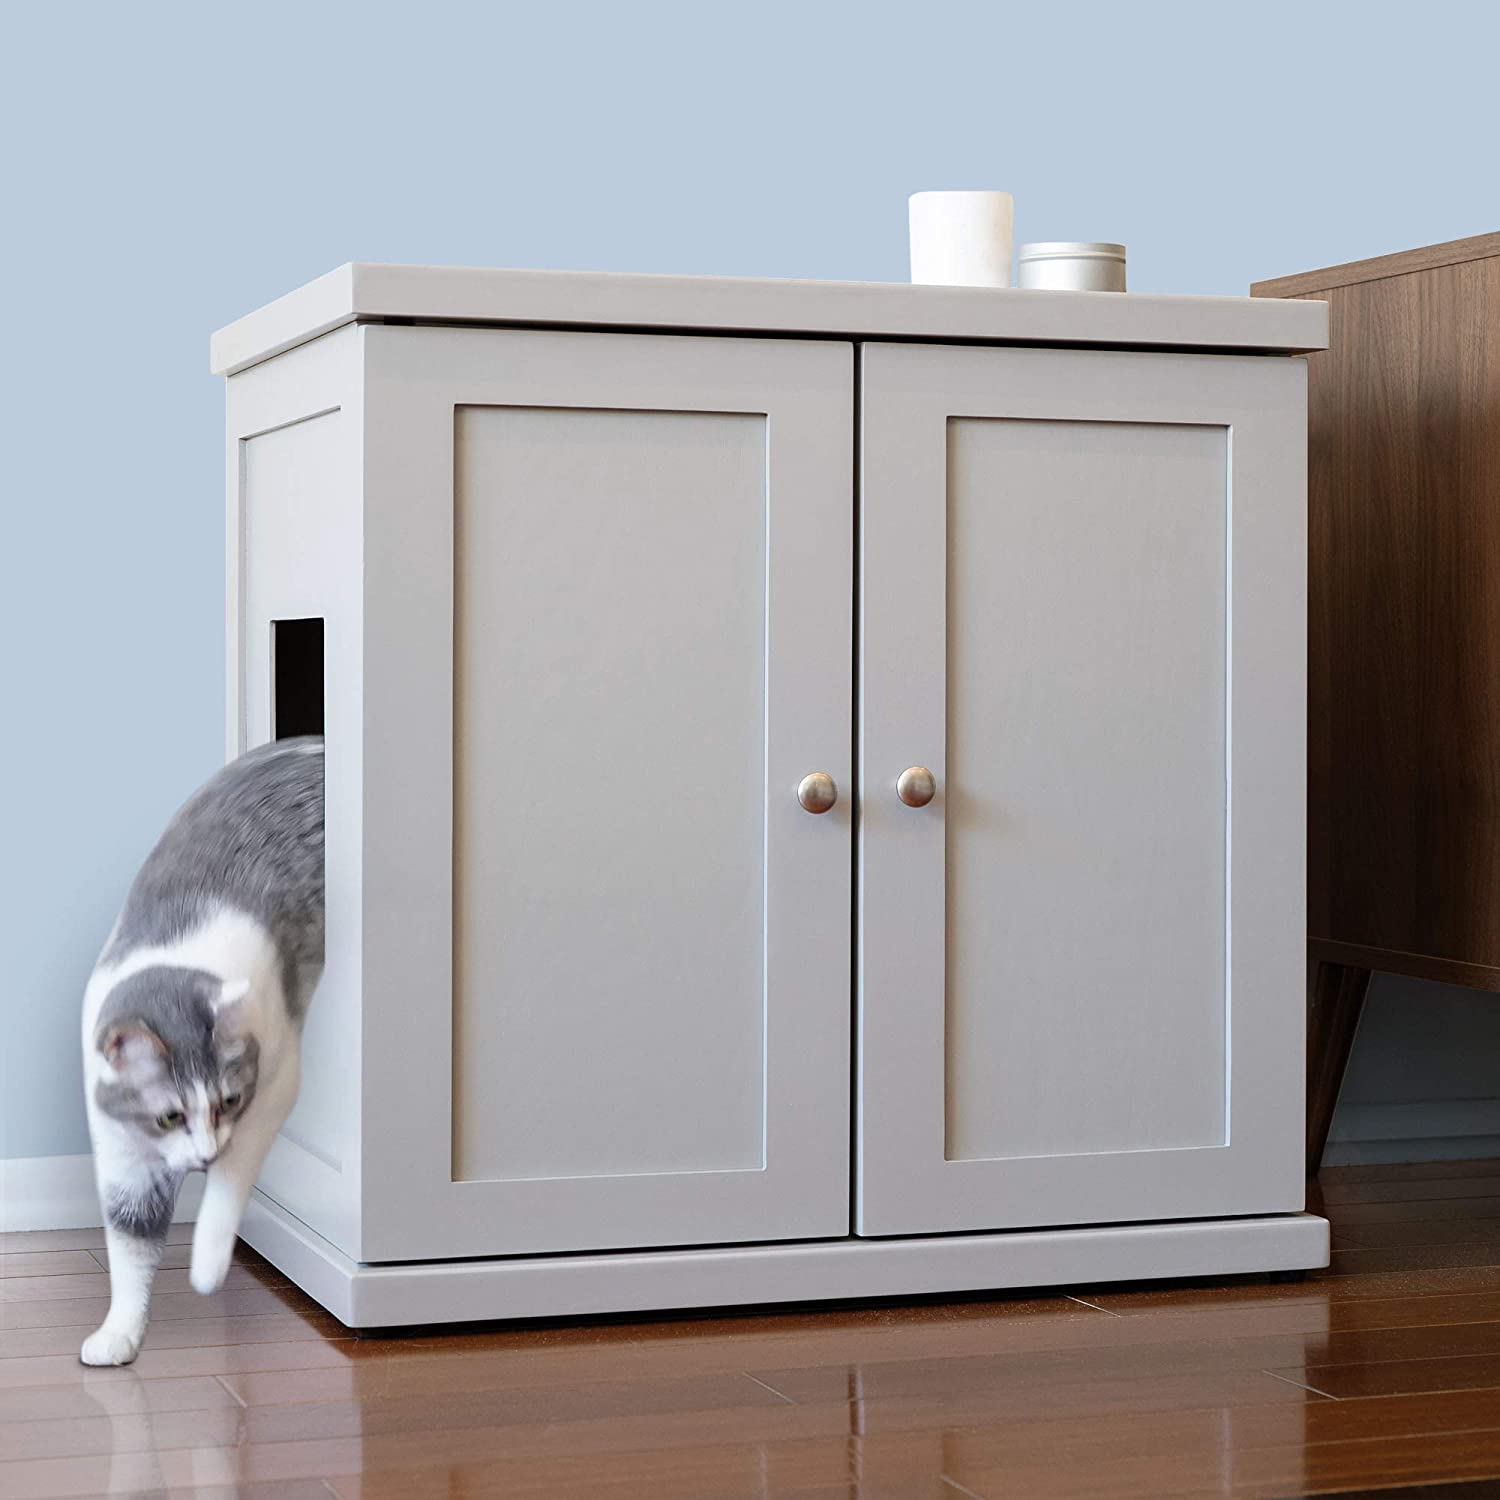 THE REFINED FELINE Cat Litter Box Enclosure Cabinet, Hidden Litter Tray Cat Furniture, Large + XLarge, Modern Style, Smoke Color